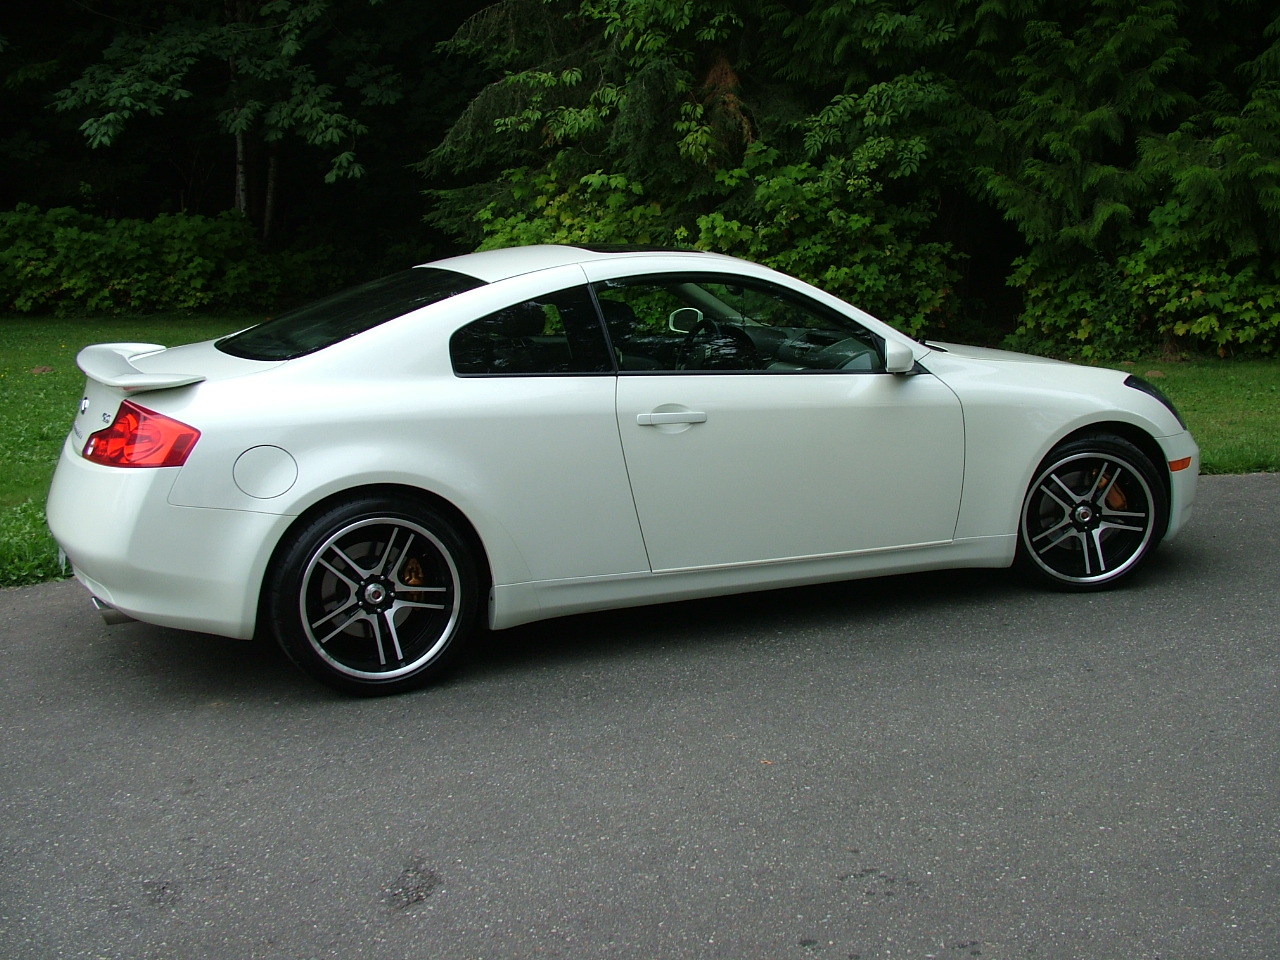 Infiniti g35 coupe related imagesstart 0 weili automotive network 2004 infiniti g35 coupe picture exterior vanachro Gallery